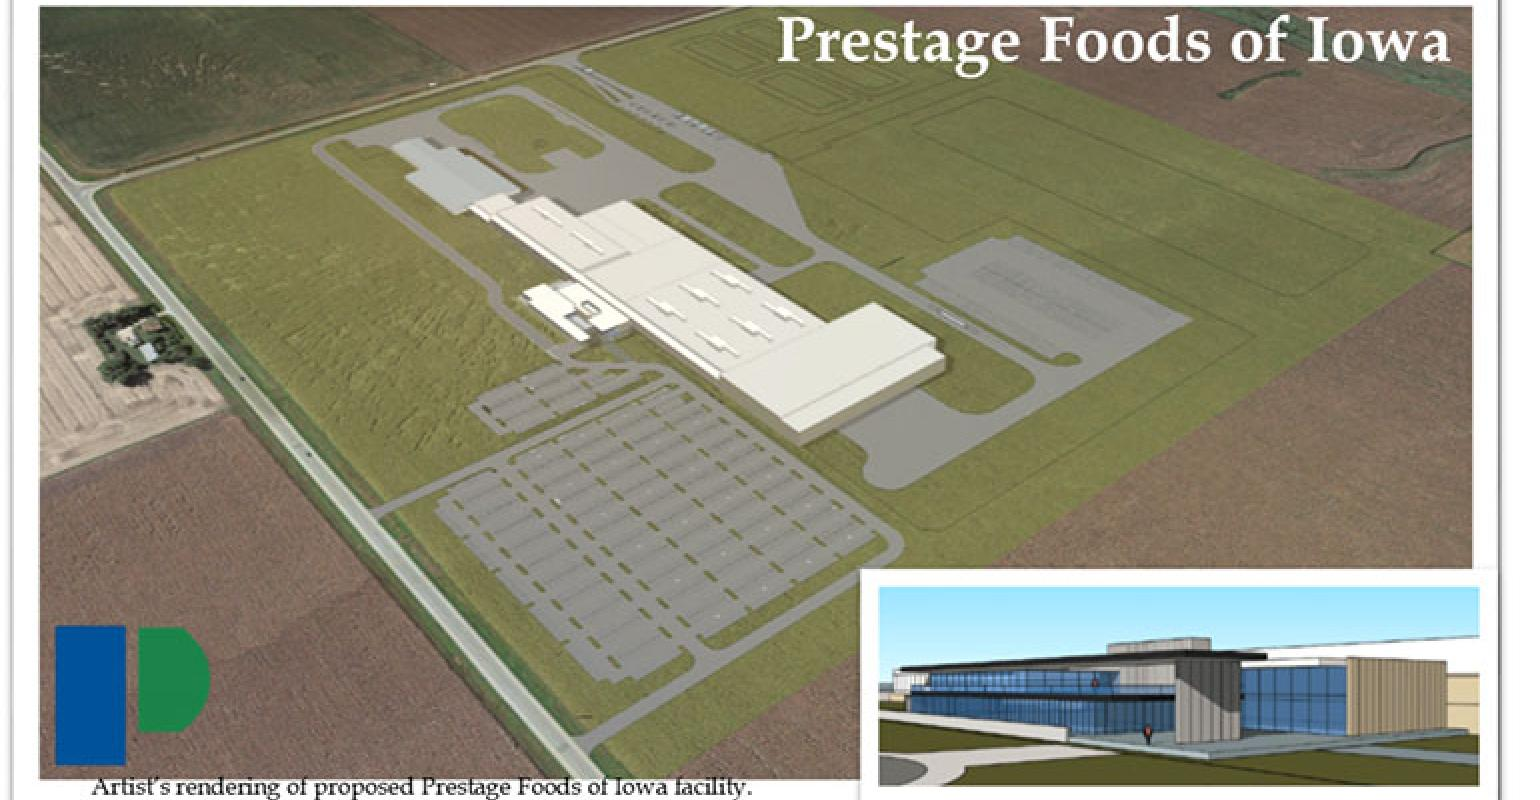 Wright County is the right move for Prestage Farms